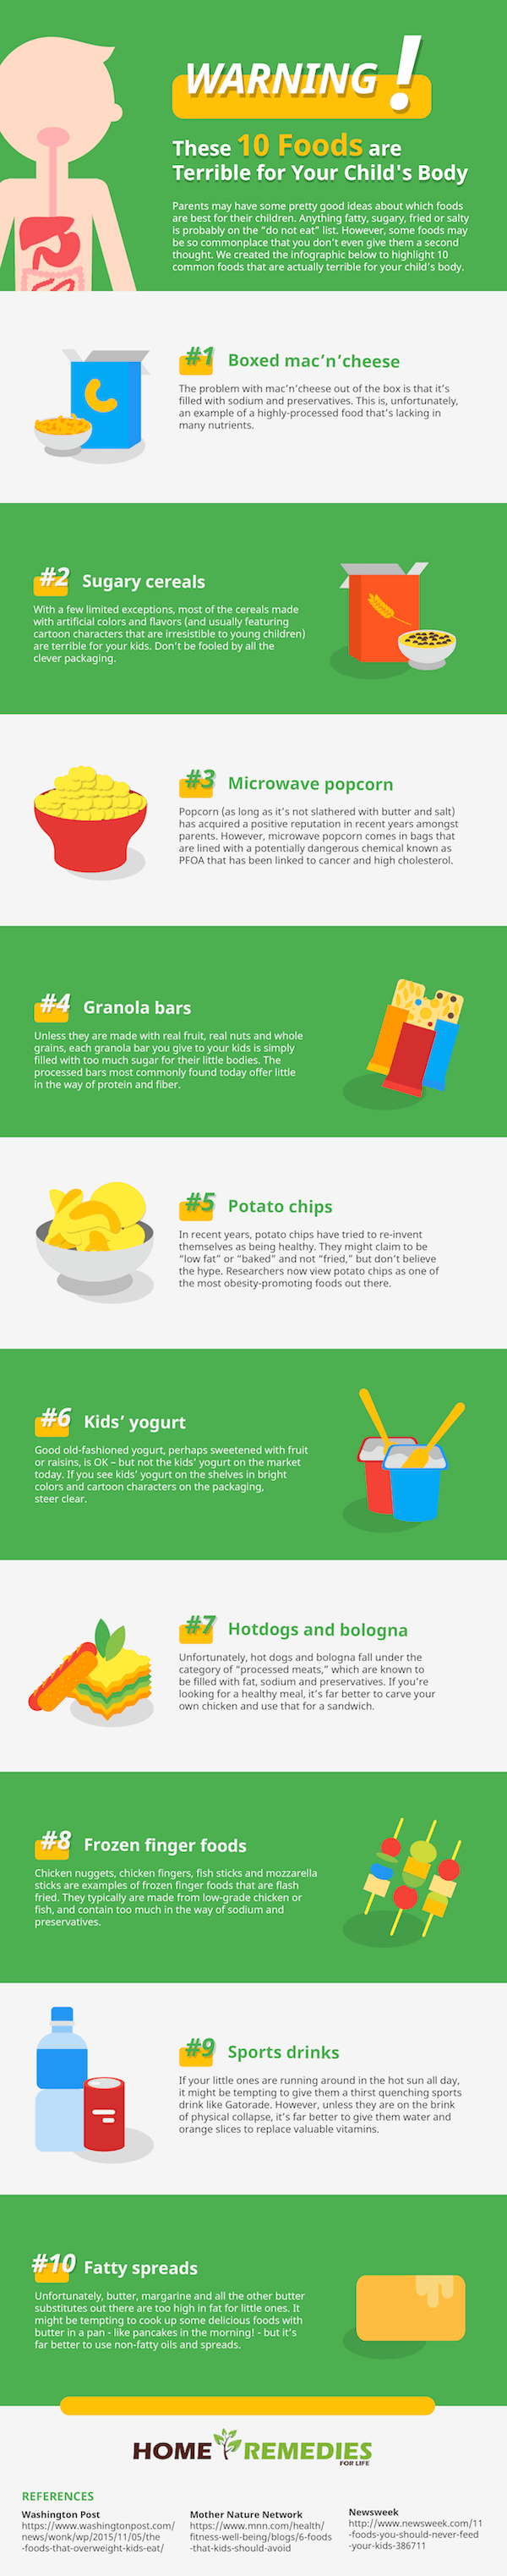 Kidz Diet Alert: 10 Foods That Won't Do Any Good to Your Child's Body - Infographic